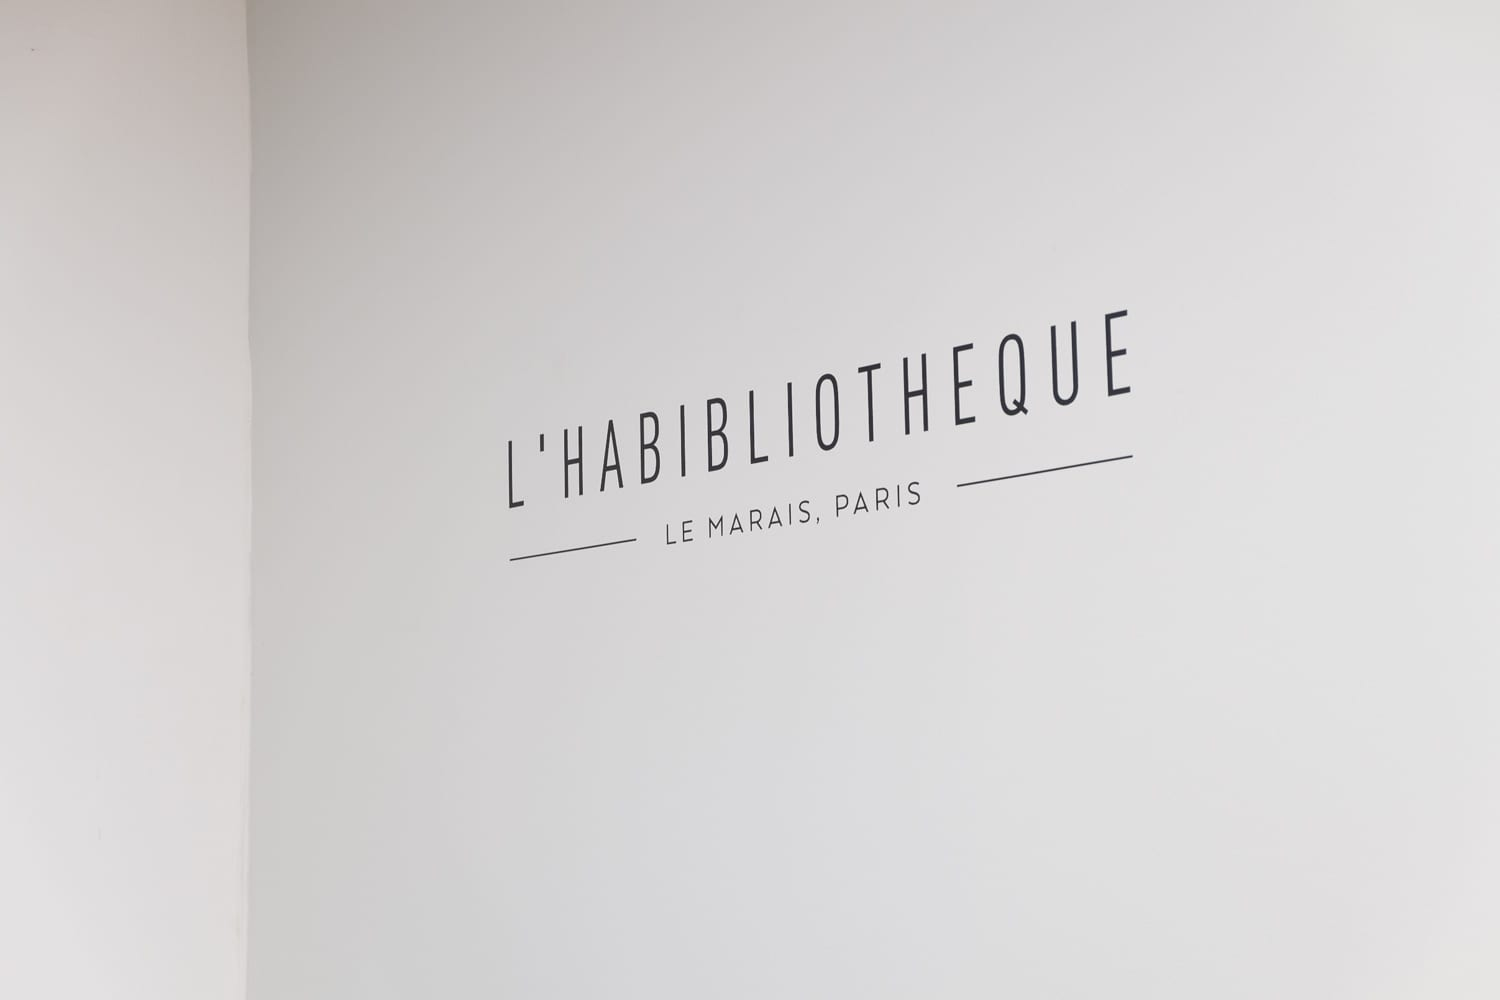 AT-lhabibliotheque-18